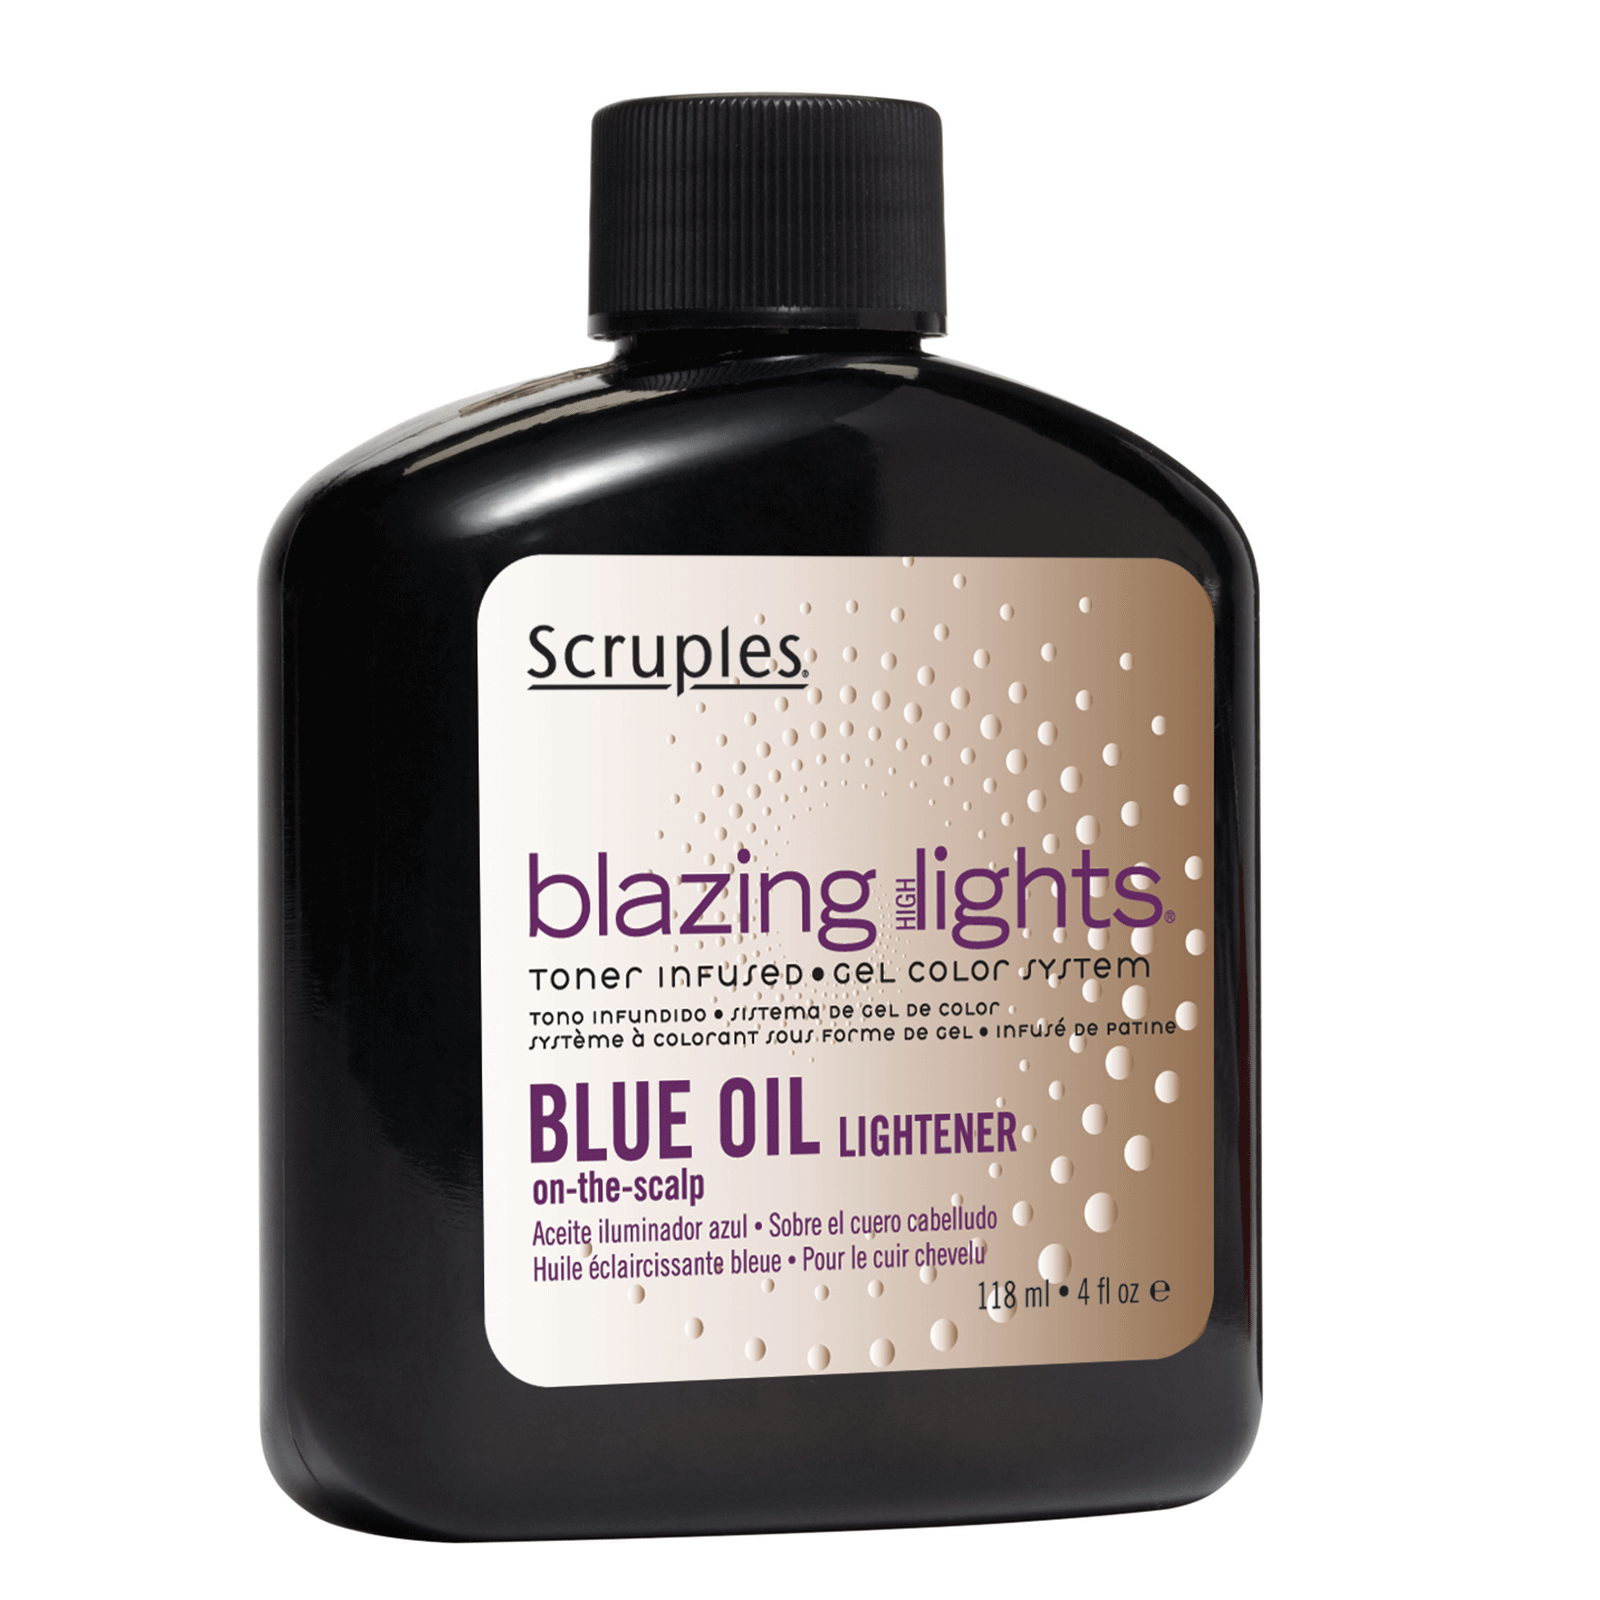 Blazing Lights Blue Oil Lightener